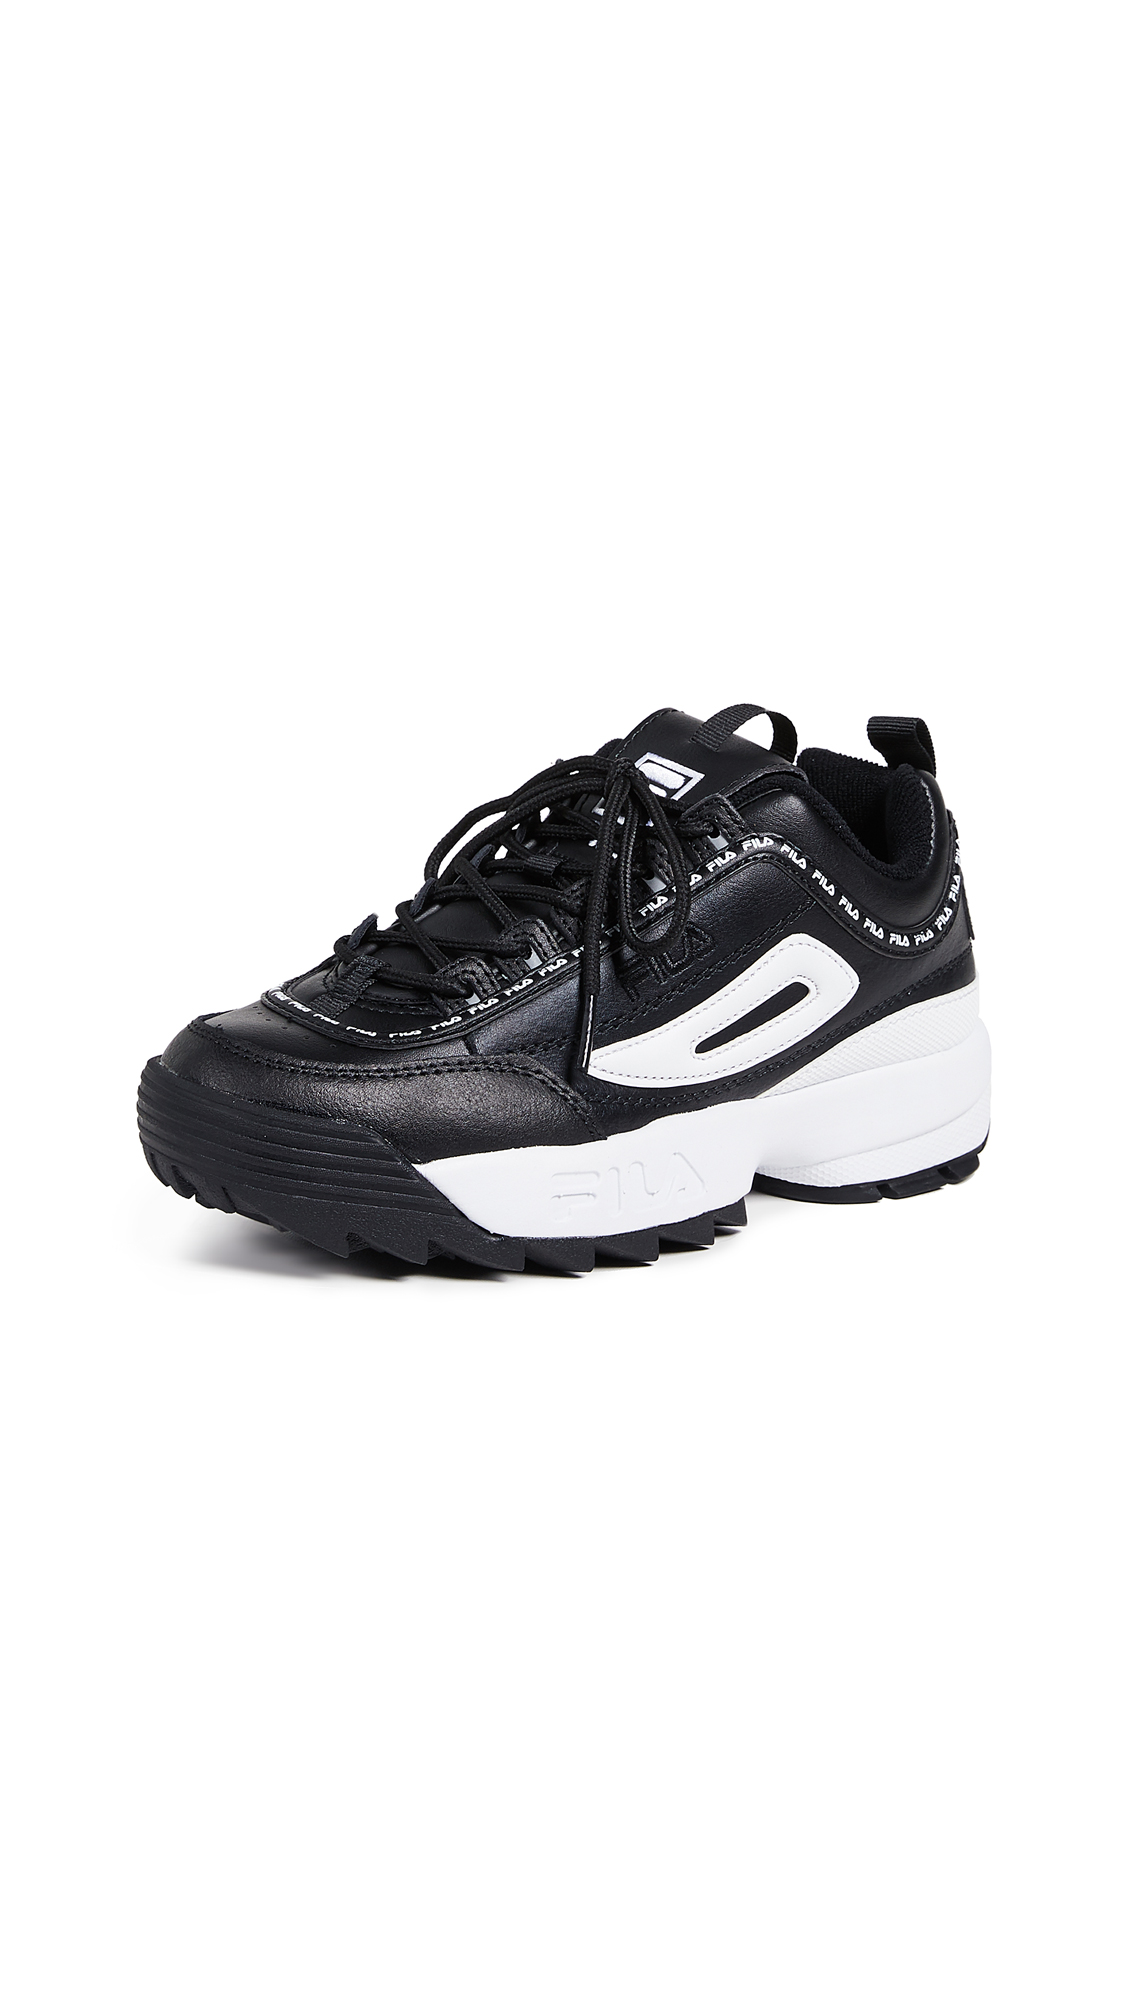 Disruptor Ii Premium Repeat Sneakers in Black/White